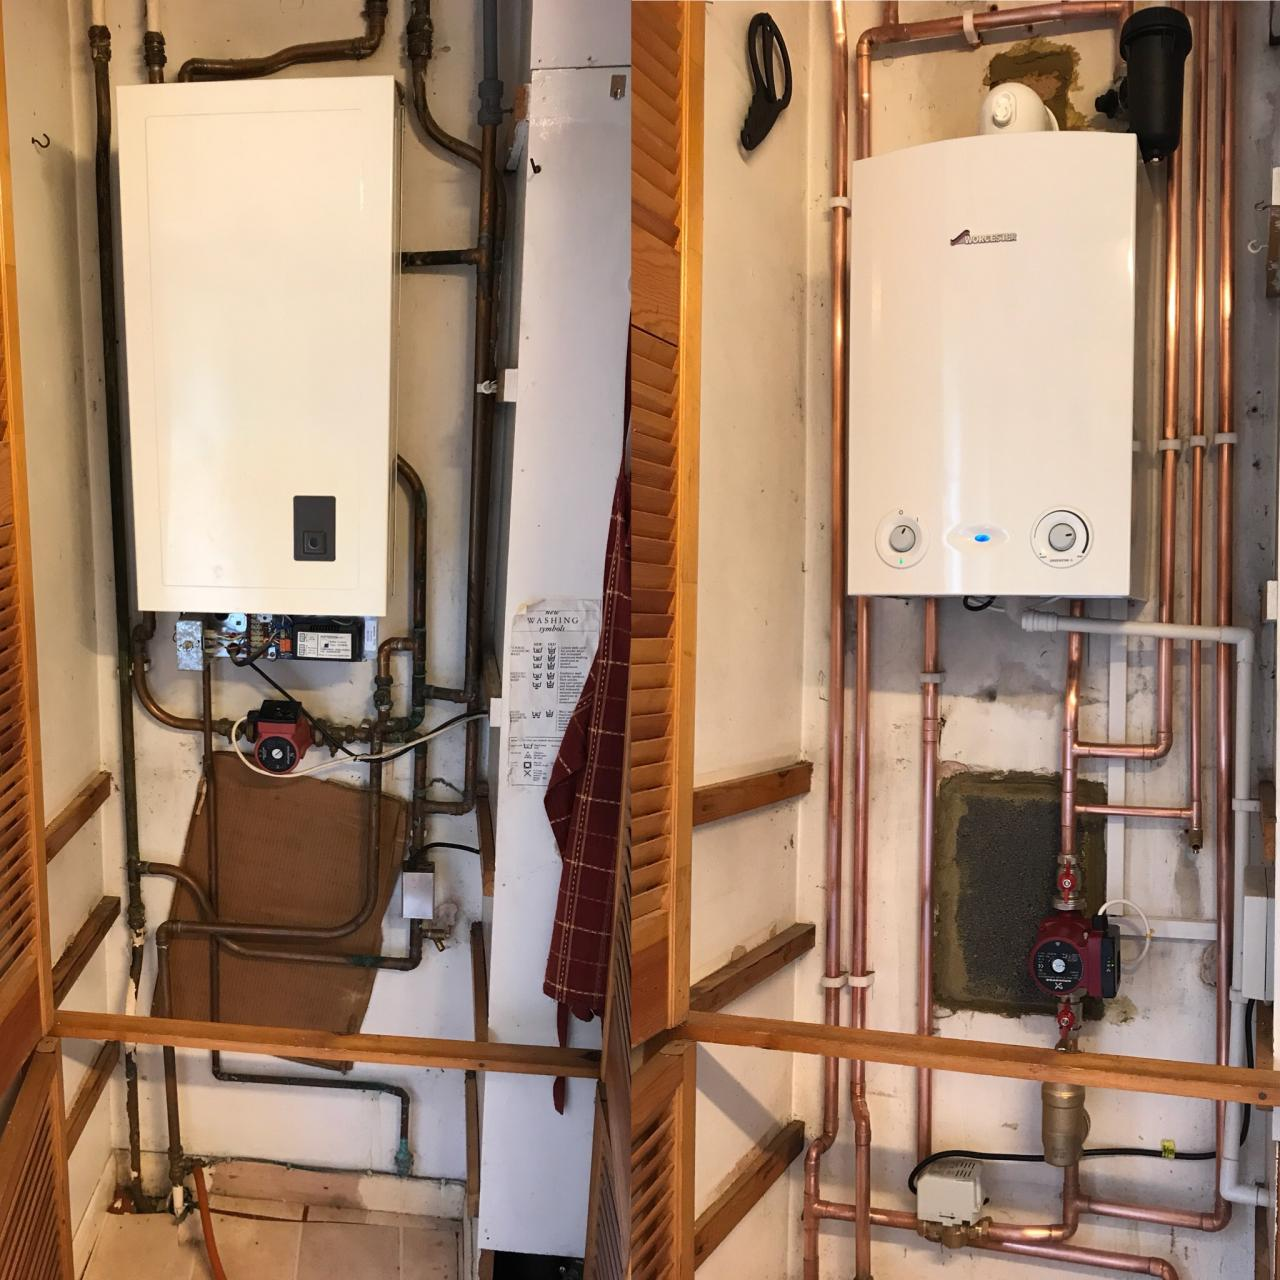 Before and after Ri boiler installation.